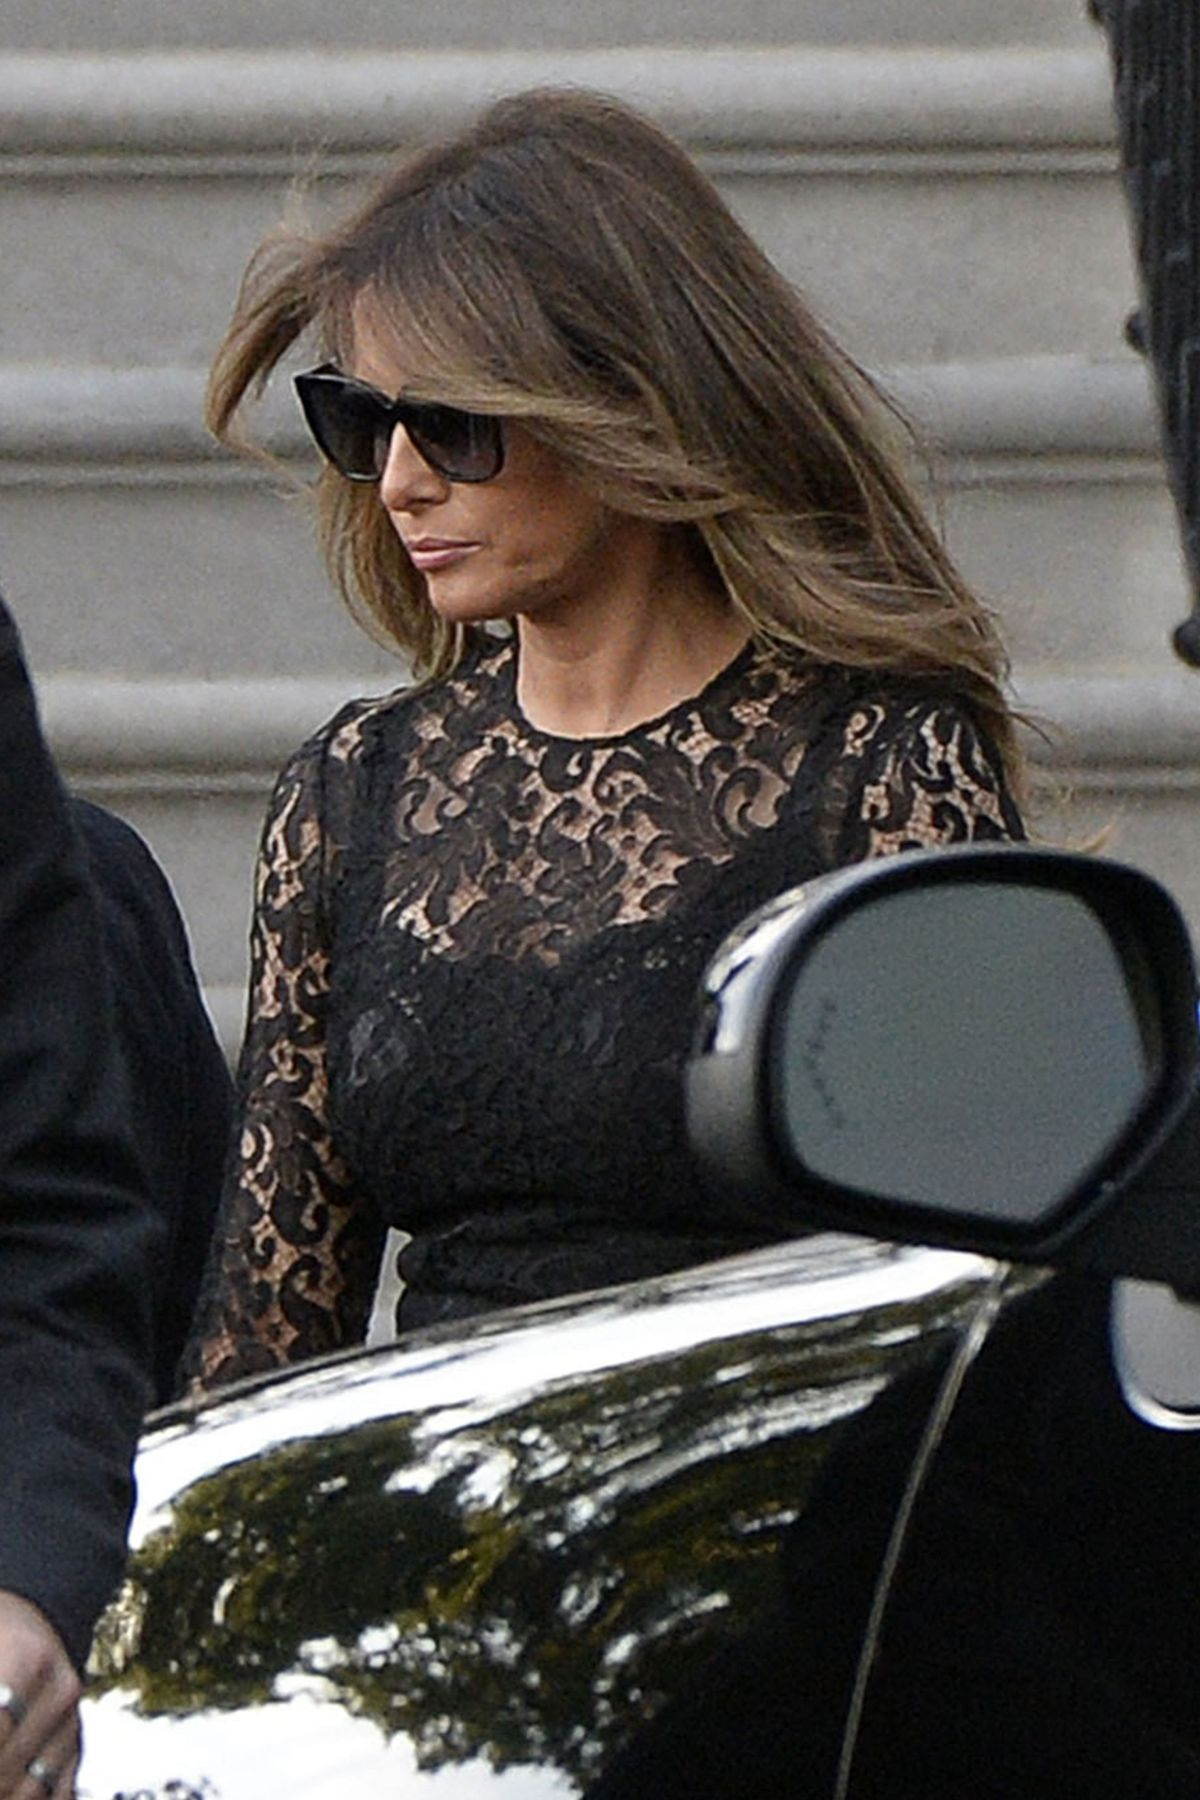 MELANIA and Donald TRUMP Out for Dinner in Washington D.C. 06/20/2017